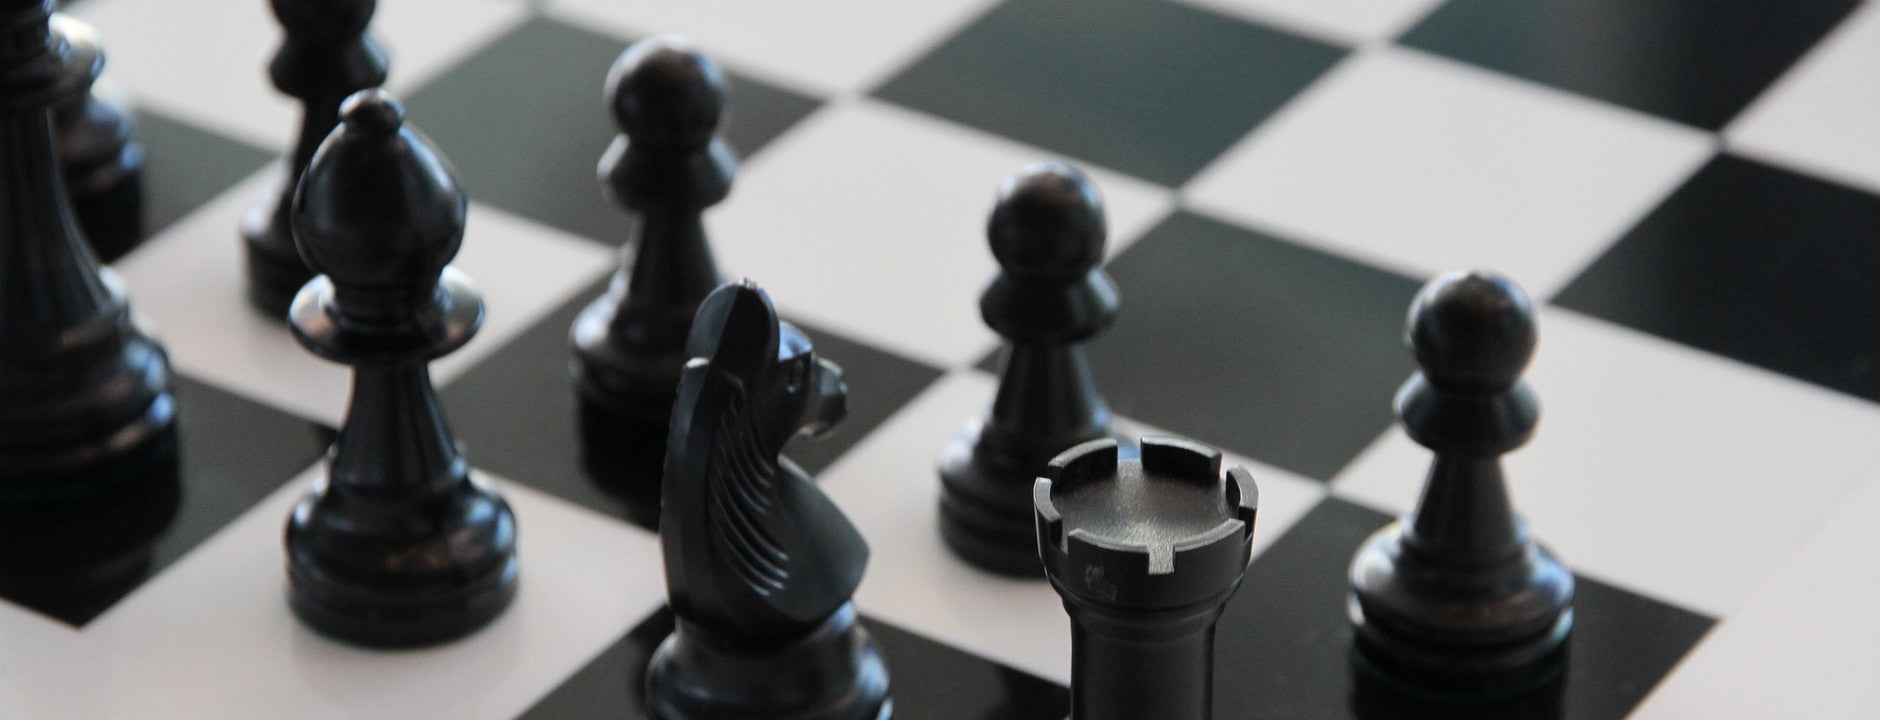 Authentic Chess Boards